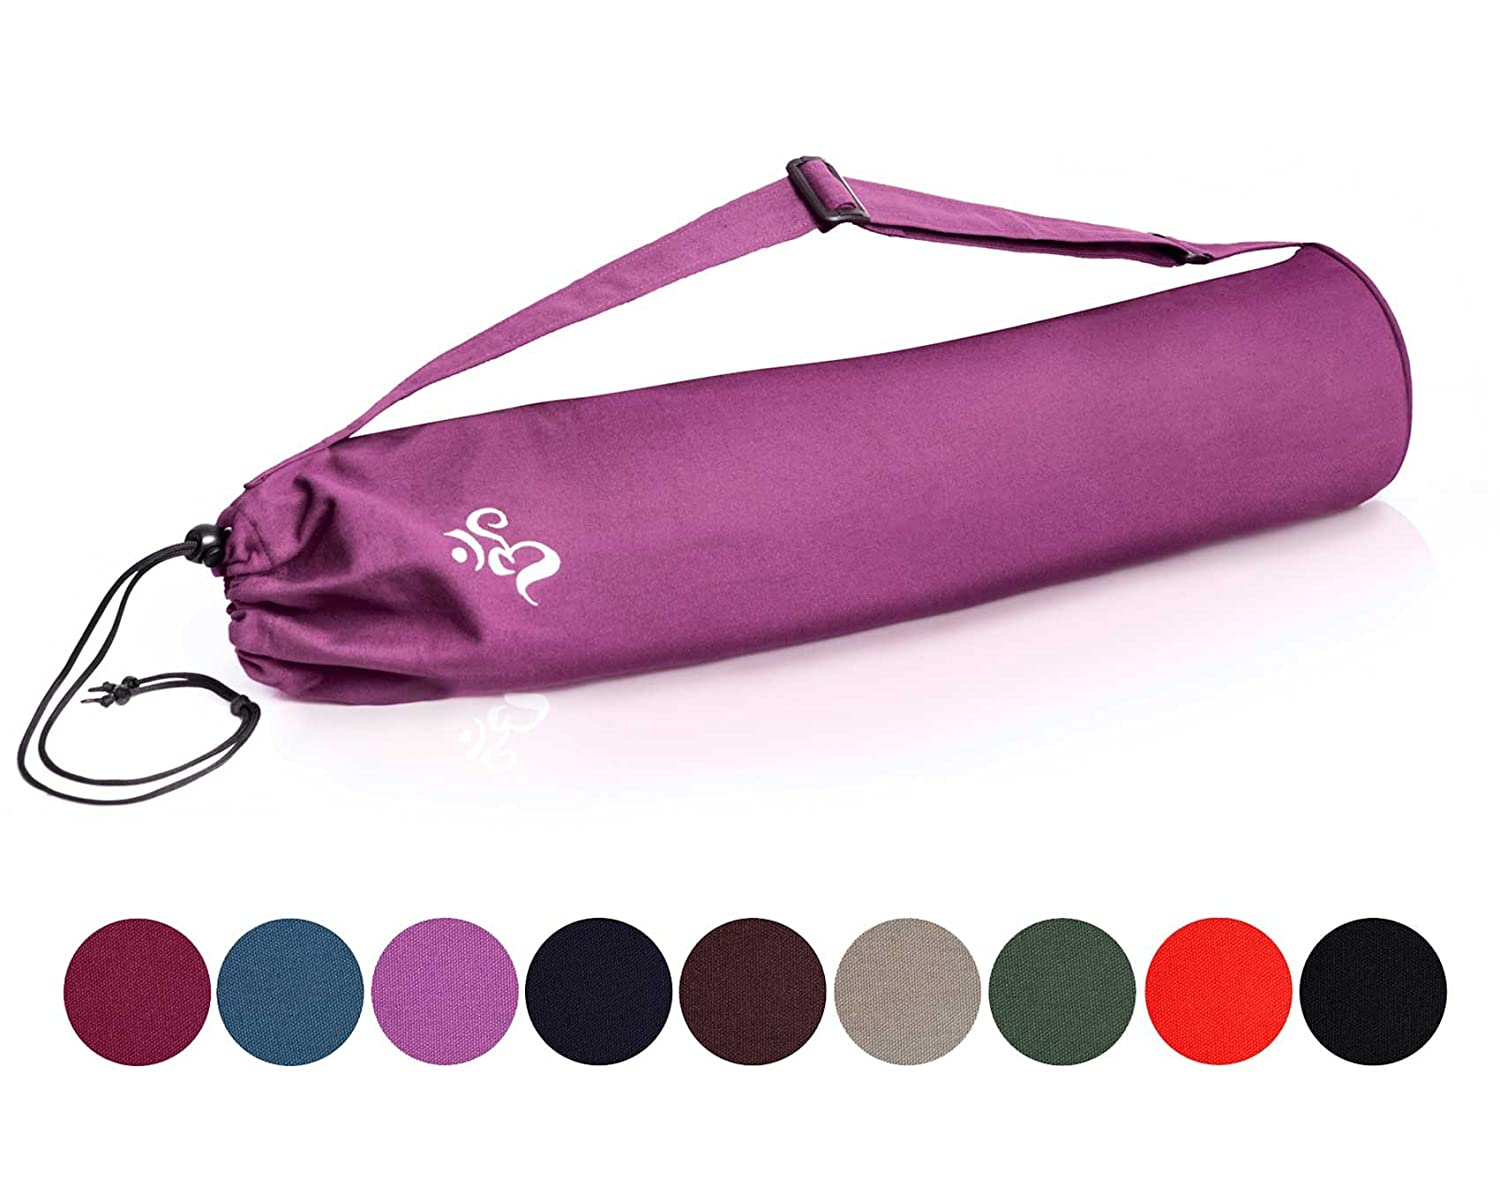 #DoYourYoga Yoga mat bag »Devala« from 100% cotton -Additional Storage Pocket - Machine washable - Suitable for all yoga mats up to the size of180 cm x 62 cm x 0,6 cm - available in many colours #DoYourSports